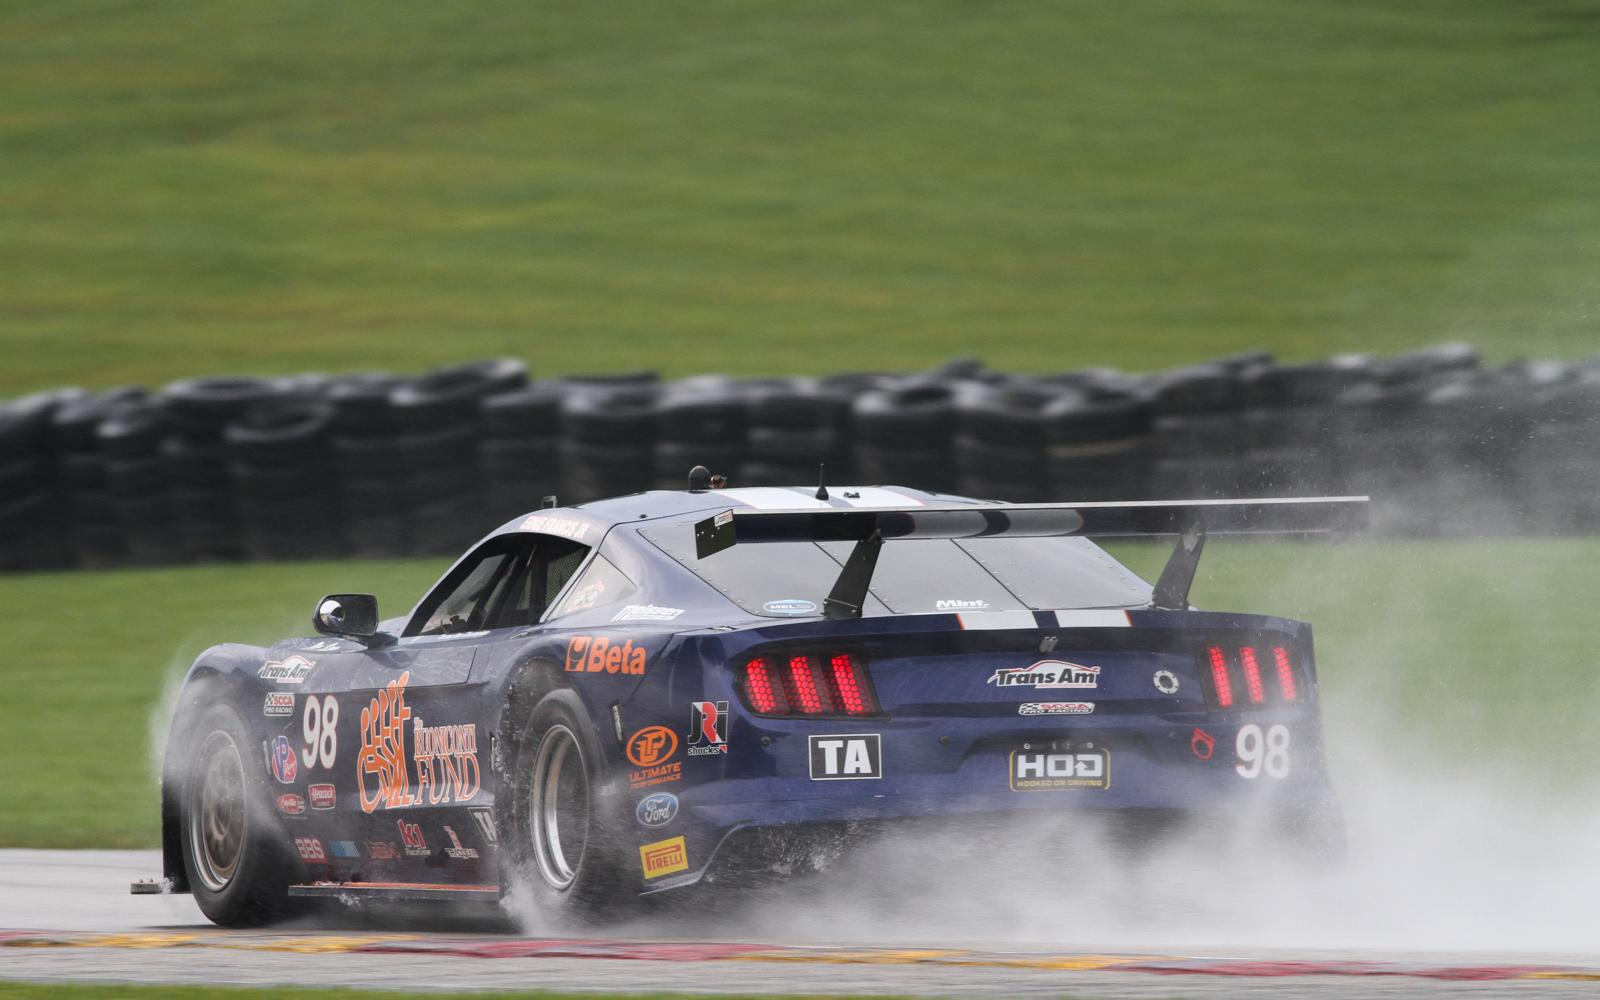 Francis and Creed victorious in wet Trans Am competitions at Road America